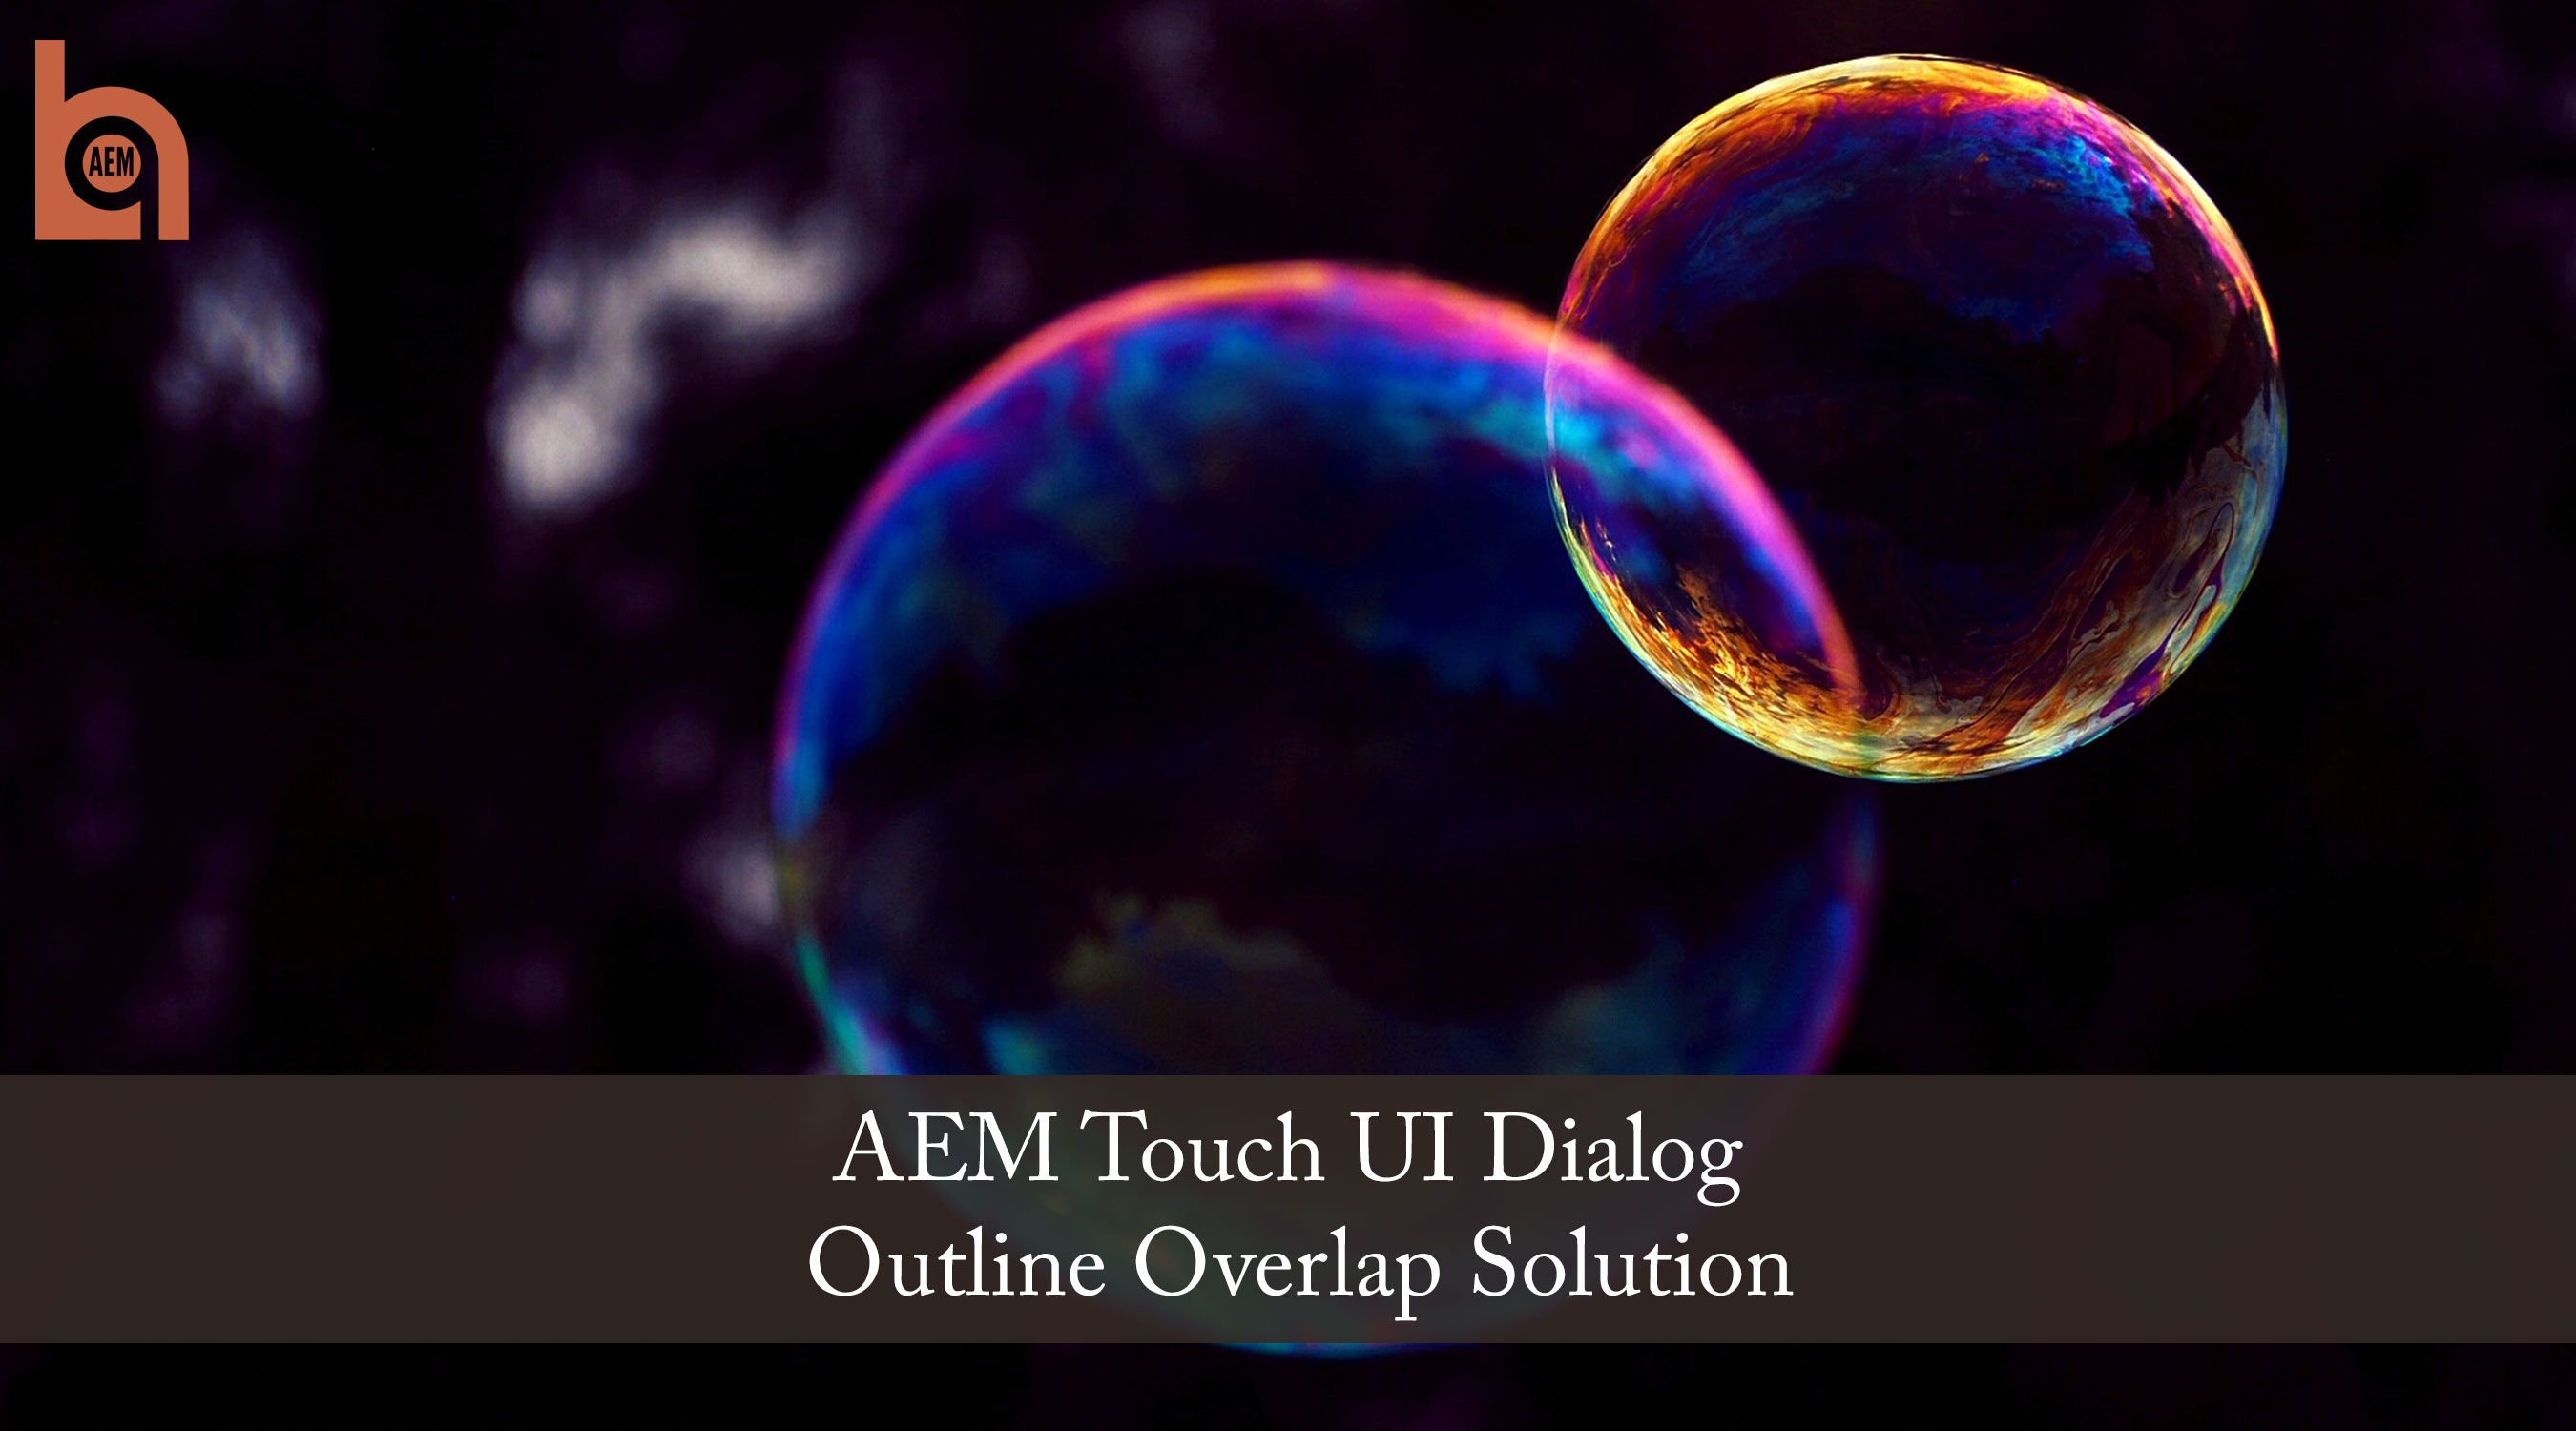 AEM Touch UI Dialog Outline Overlap Solution